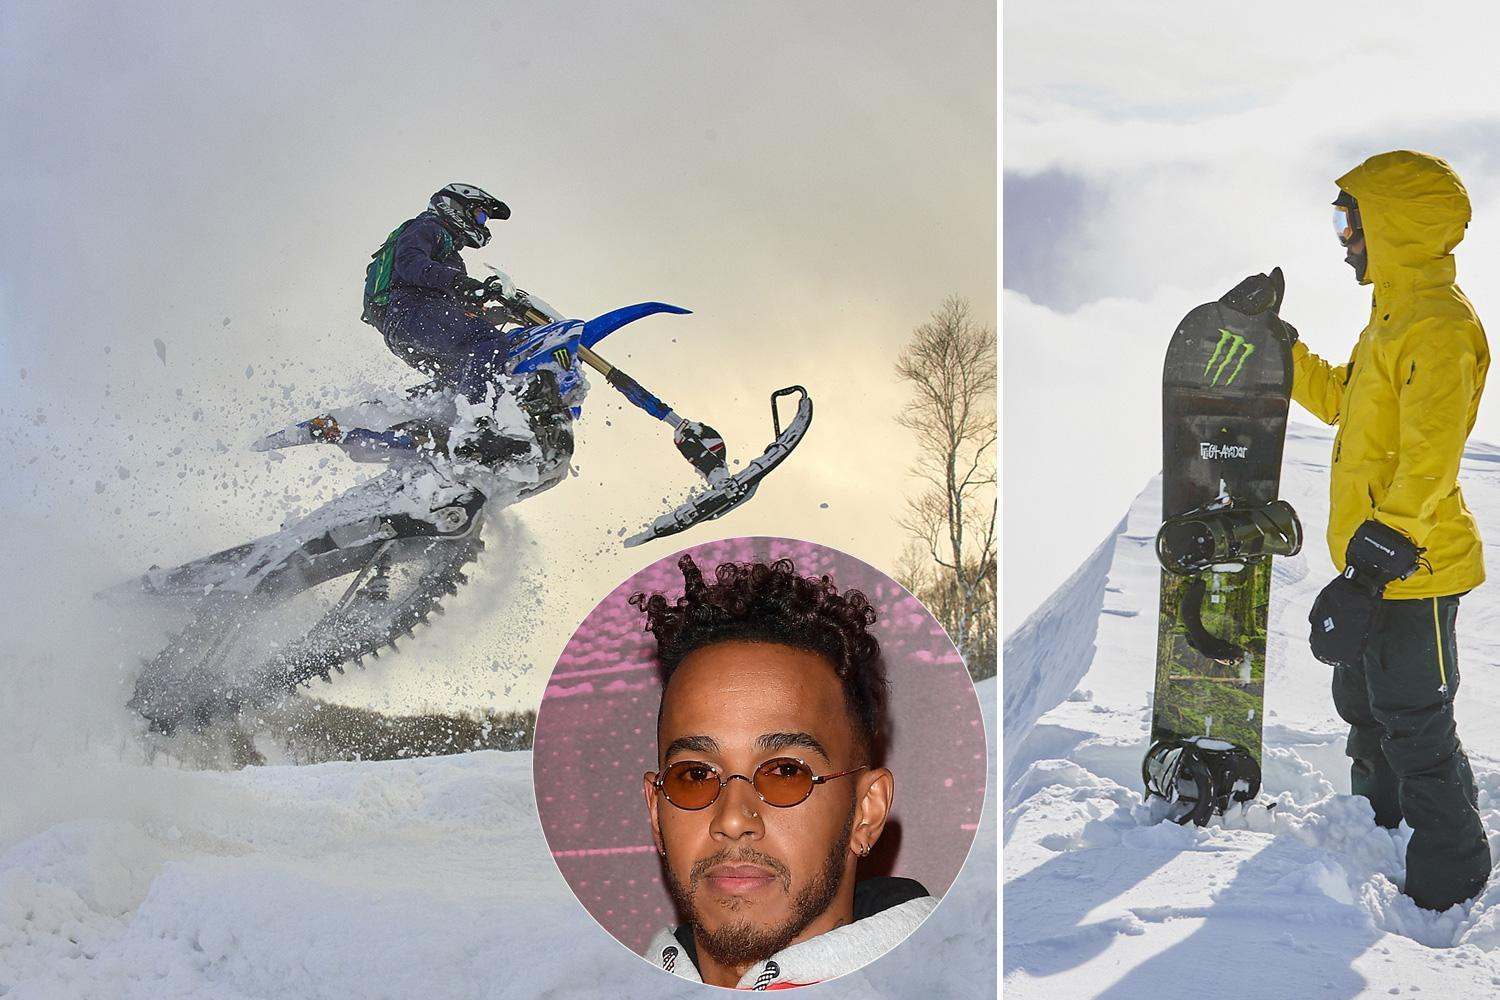 Lewis Hamilton admits he forgot he is a four-time F1 world champ during winter break surfing and snowboarding